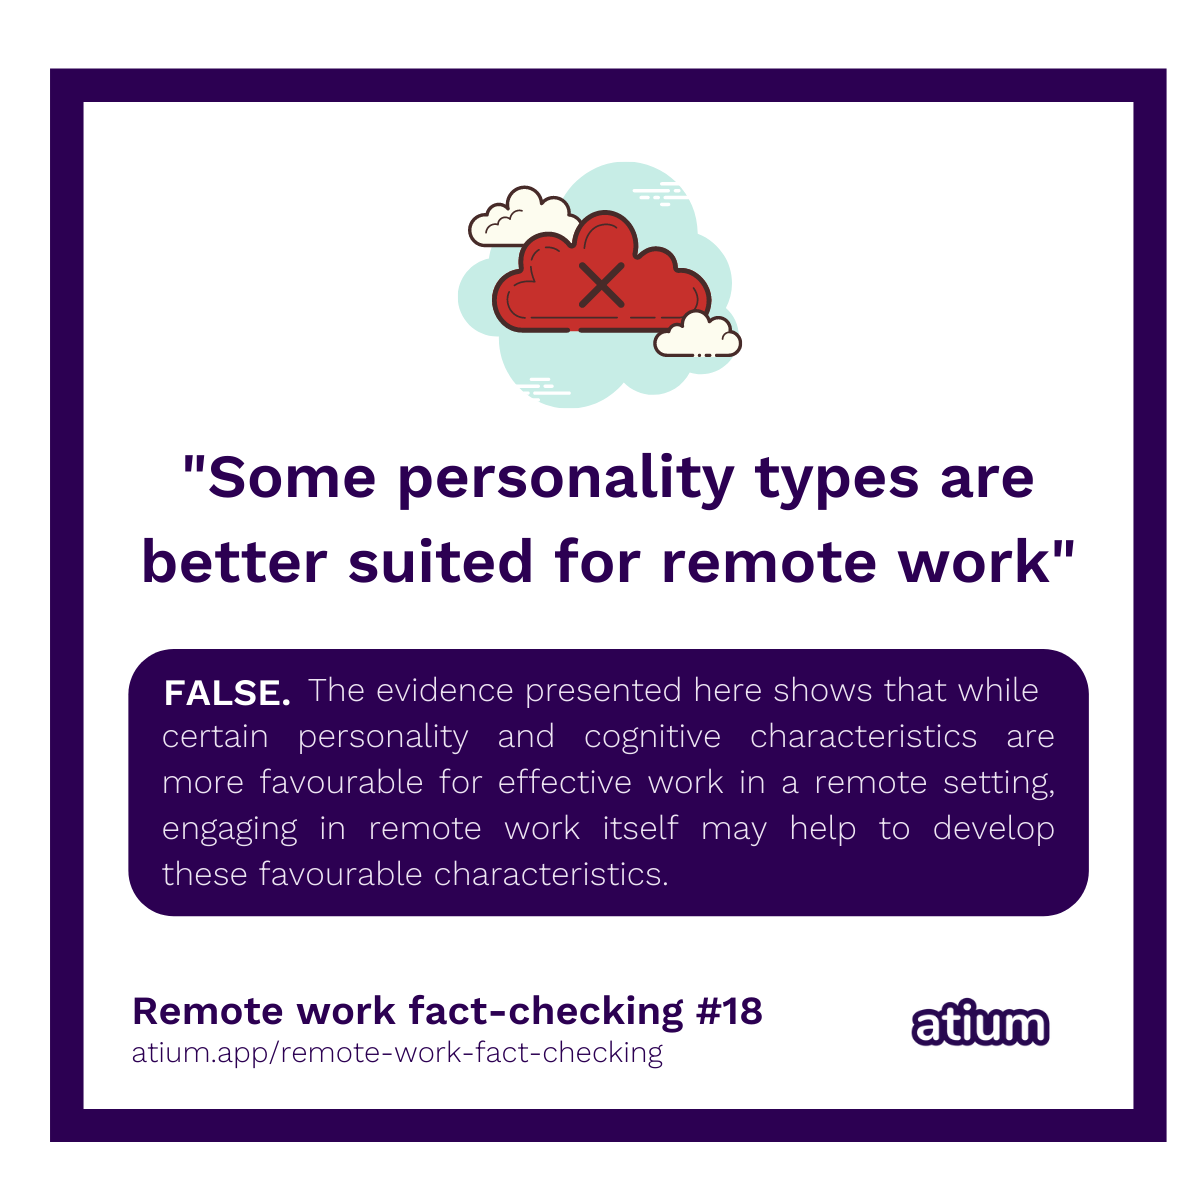 Some personality types are better suited for remote work